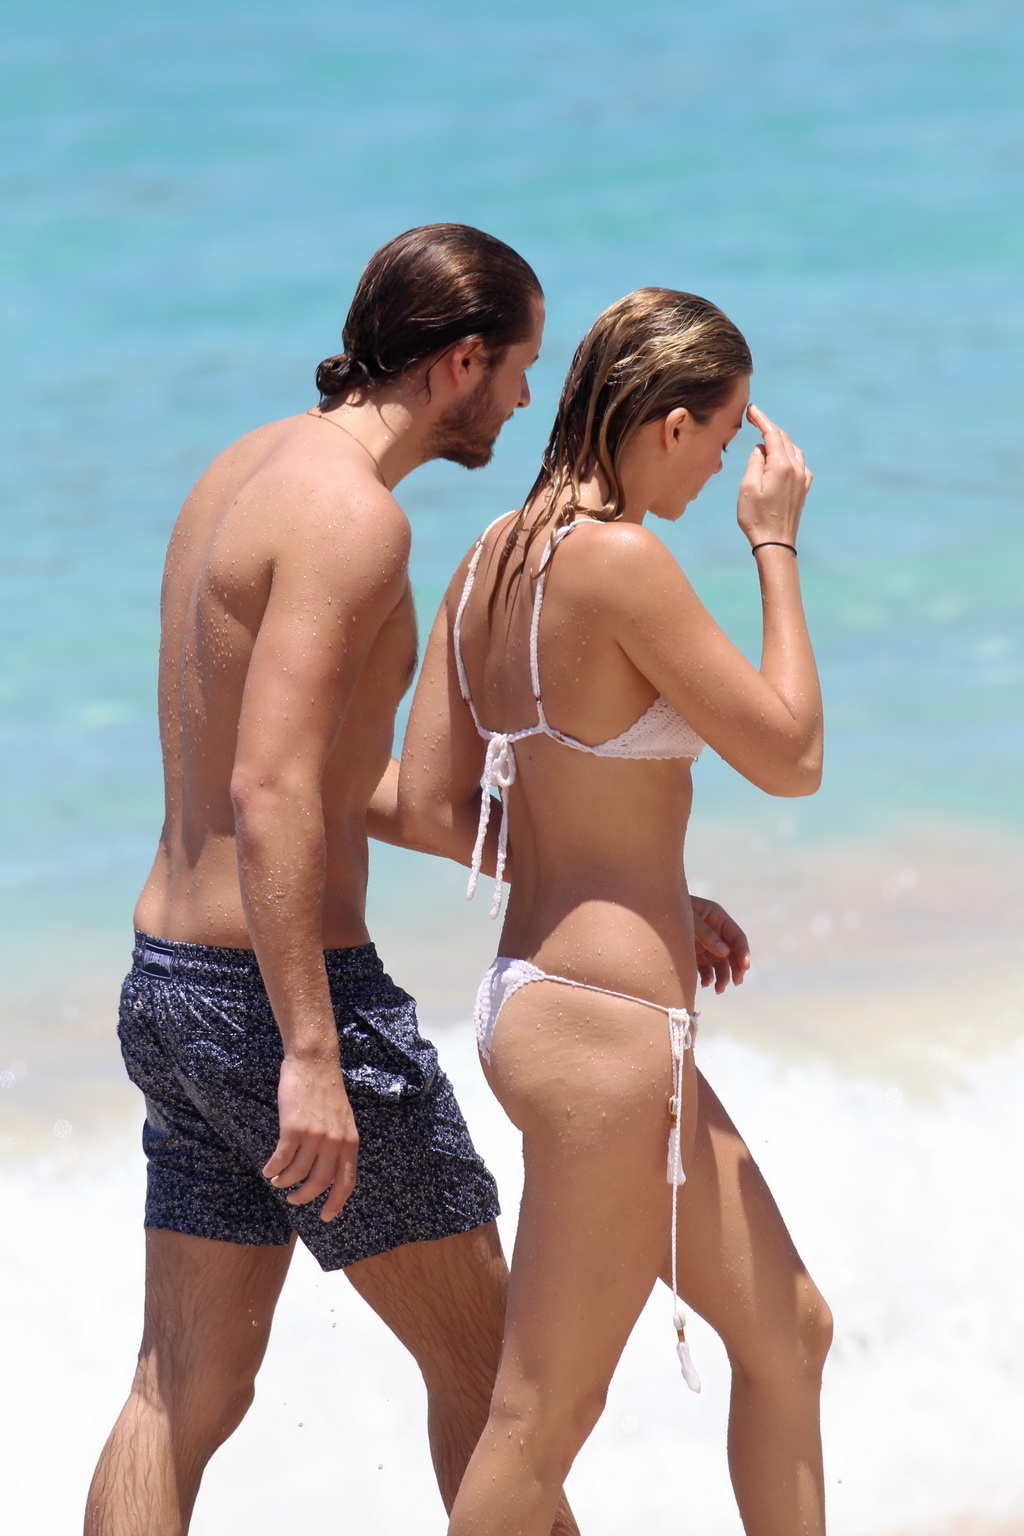 off her hot body in tiny white knitted bikini at the beach in st barts